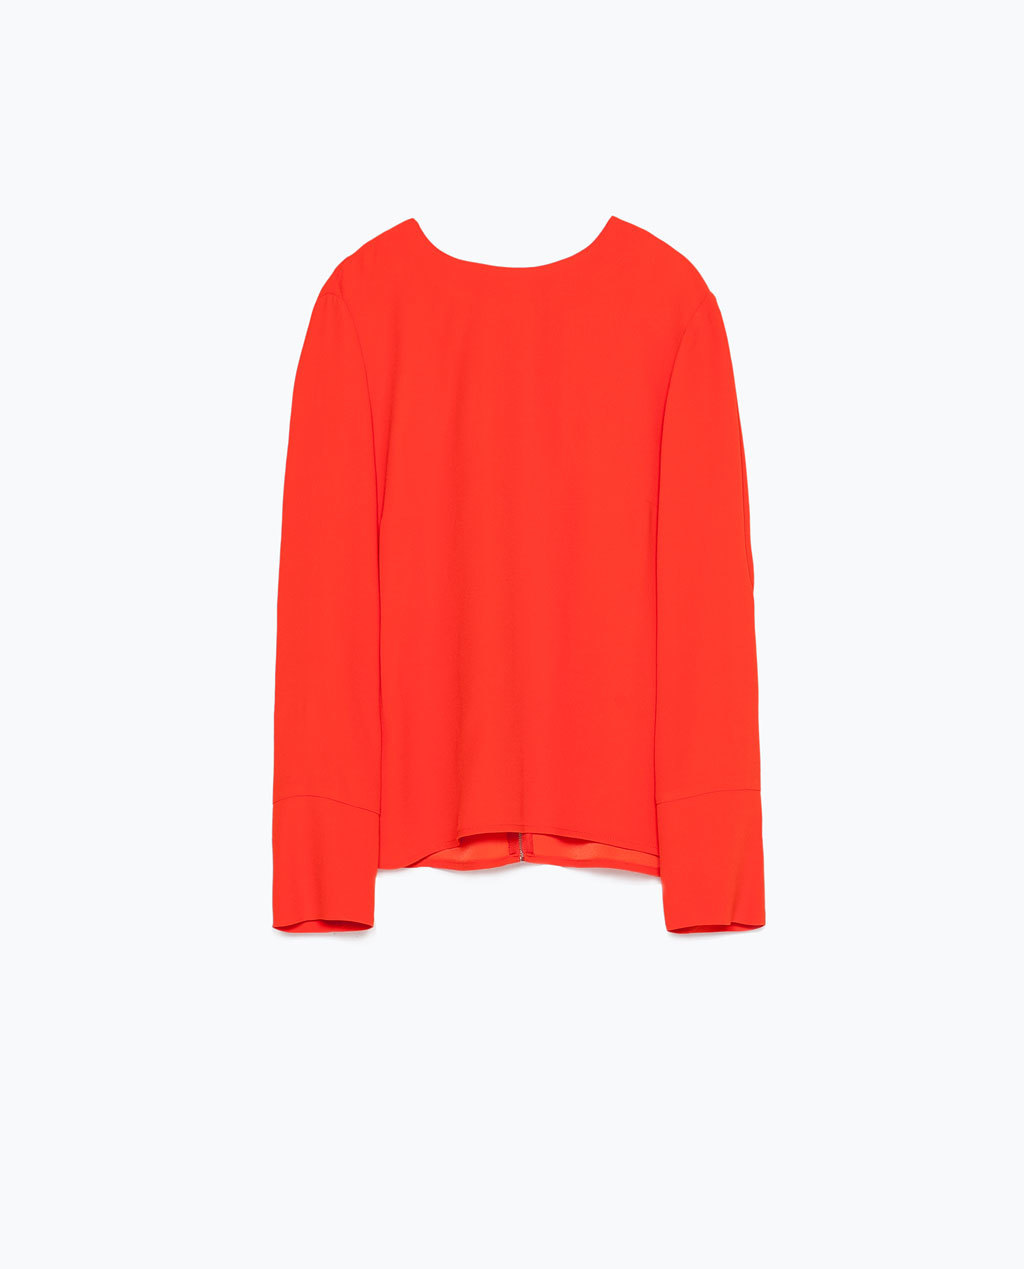 Back Zip Top - pattern: plain; predominant colour: bright orange; occasions: casual, creative work; length: standard; style: top; fibres: viscose/rayon - 100%; fit: straight cut; neckline: crew; sleeve length: long sleeve; sleeve style: standard; pattern type: fabric; texture group: other - light to midweight; season: s/s 2015; wardrobe: highlight